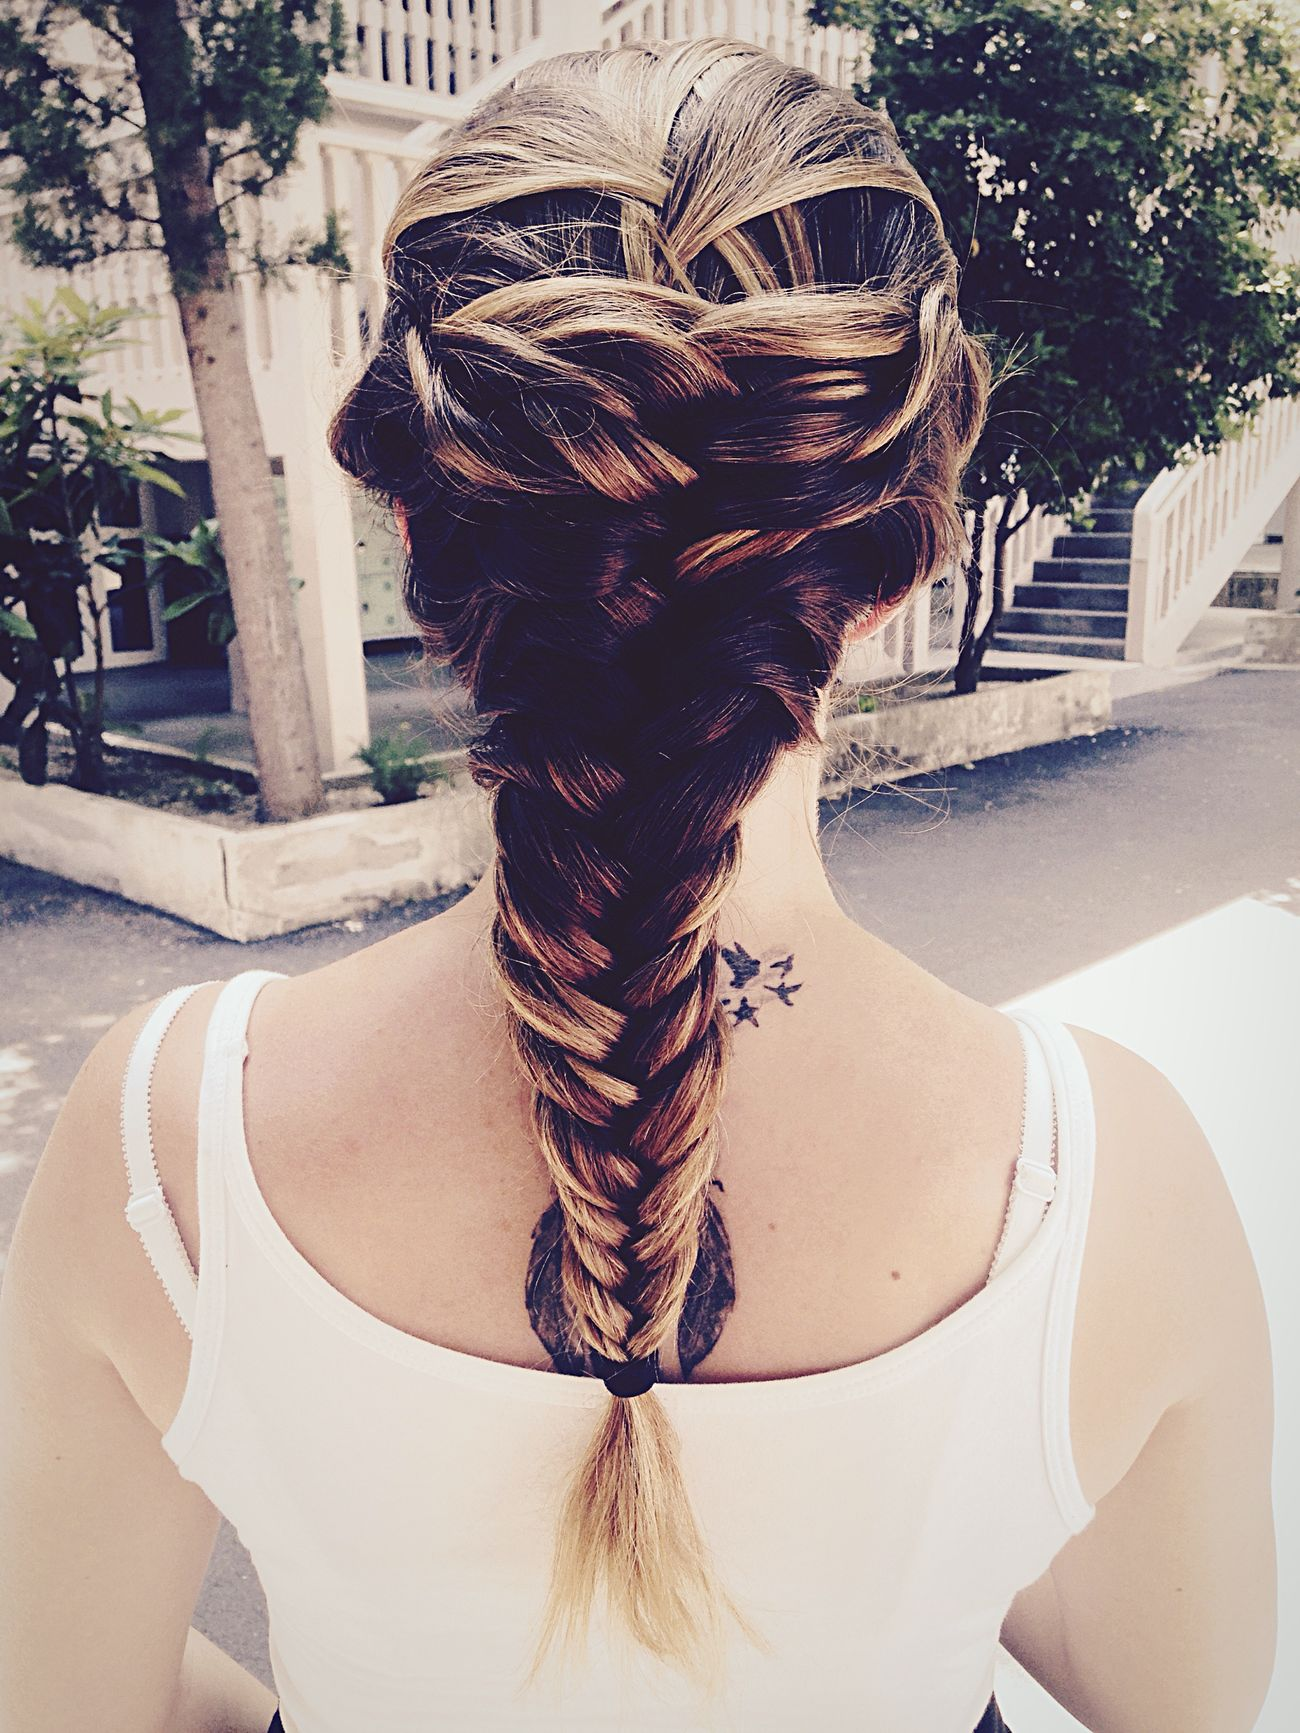 Hairstyle Hair Girl Fishtail Braid Braid